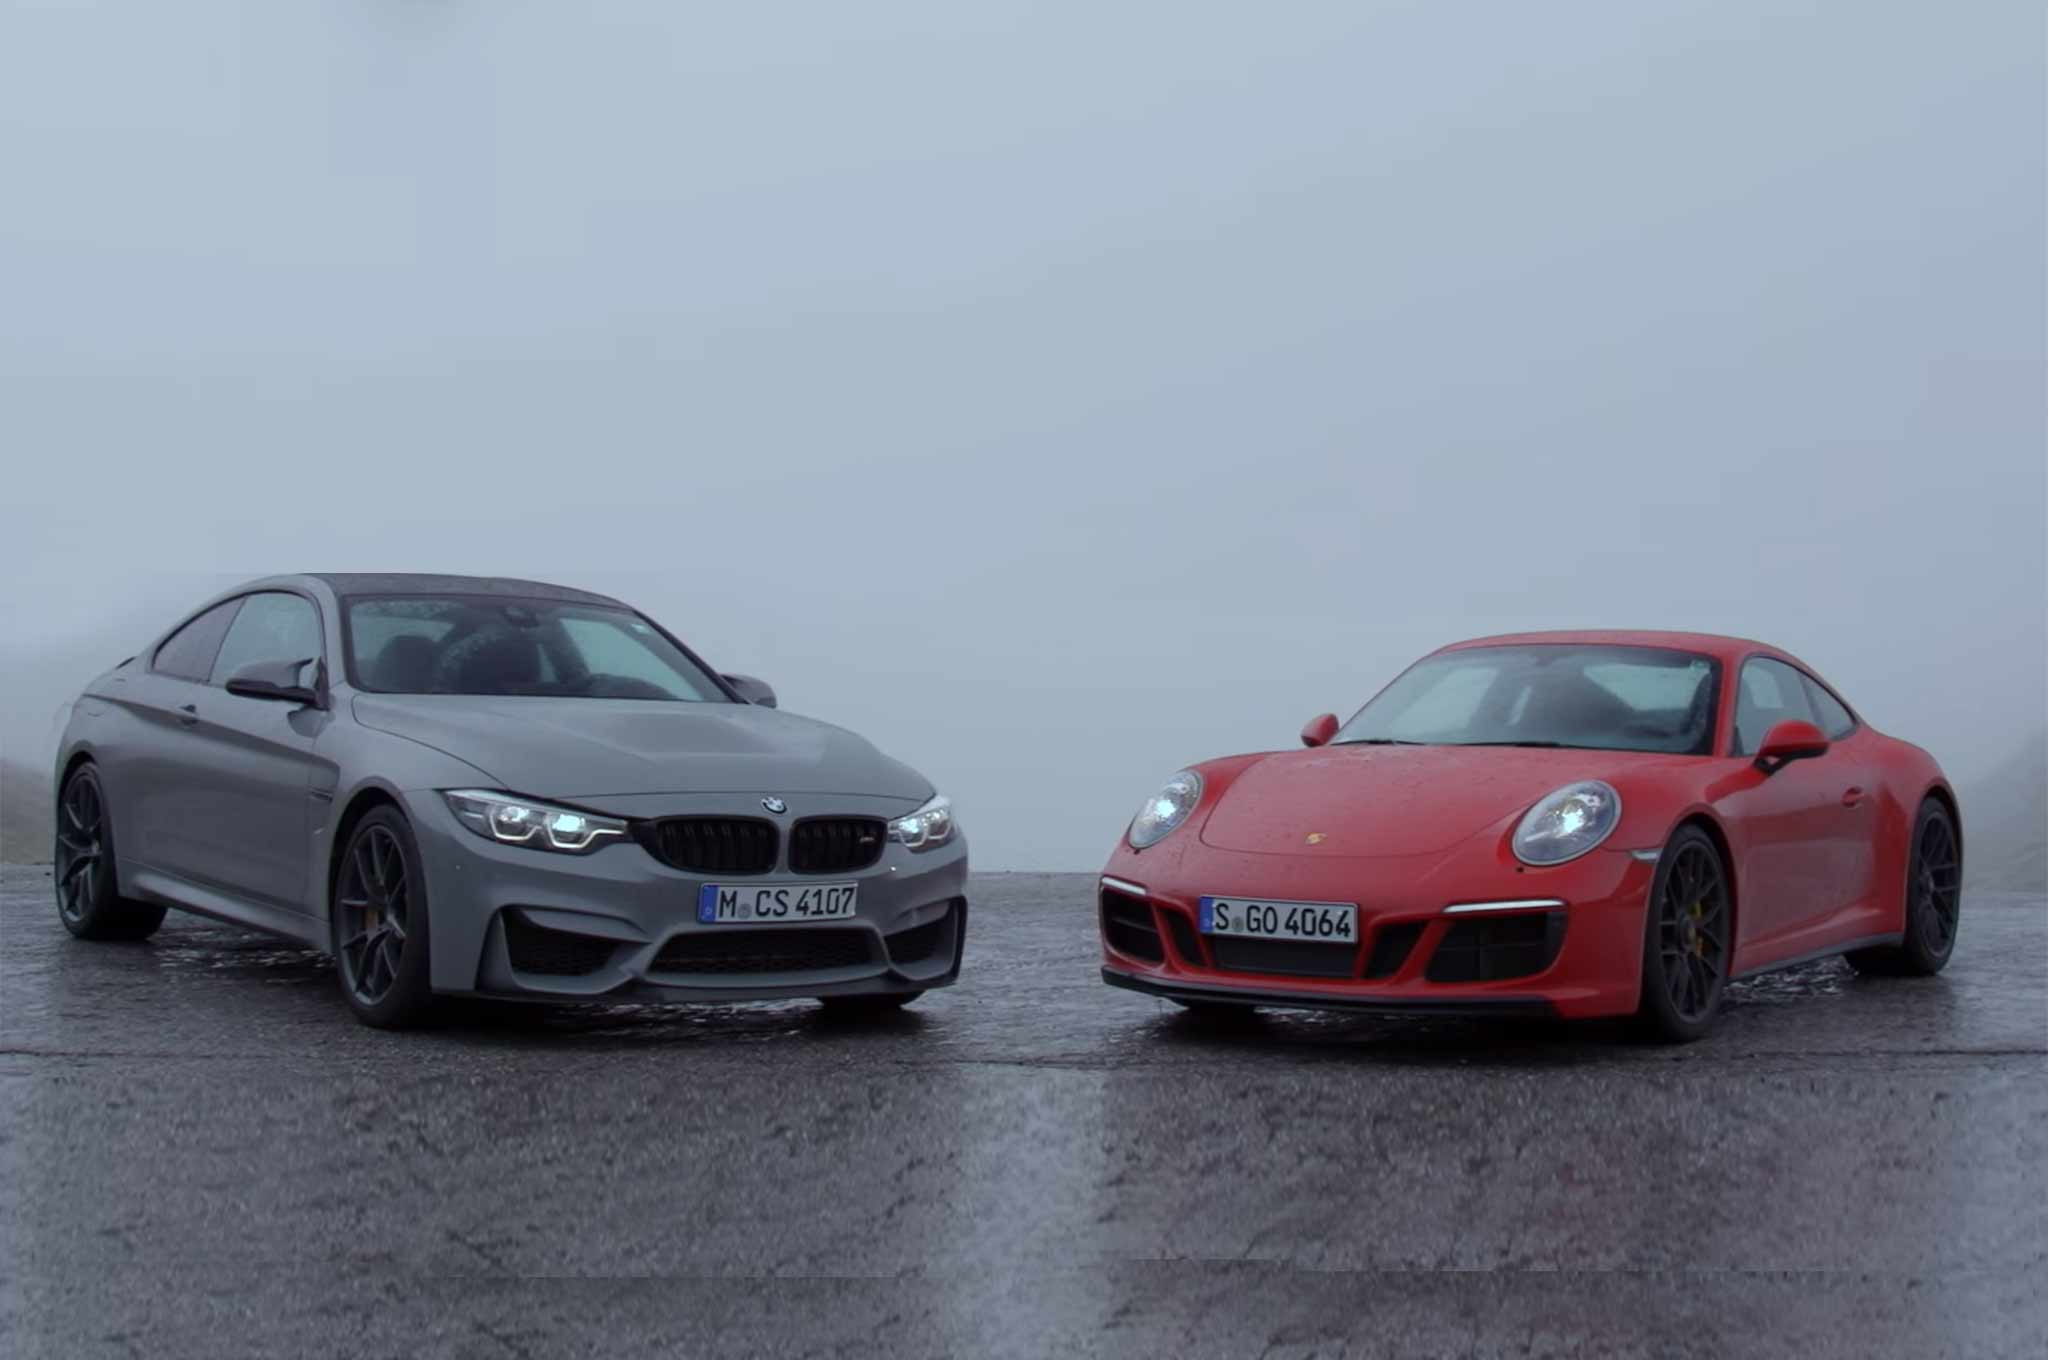 2018 BMW M4 CS vs. 2018 Porsche 911 GTS